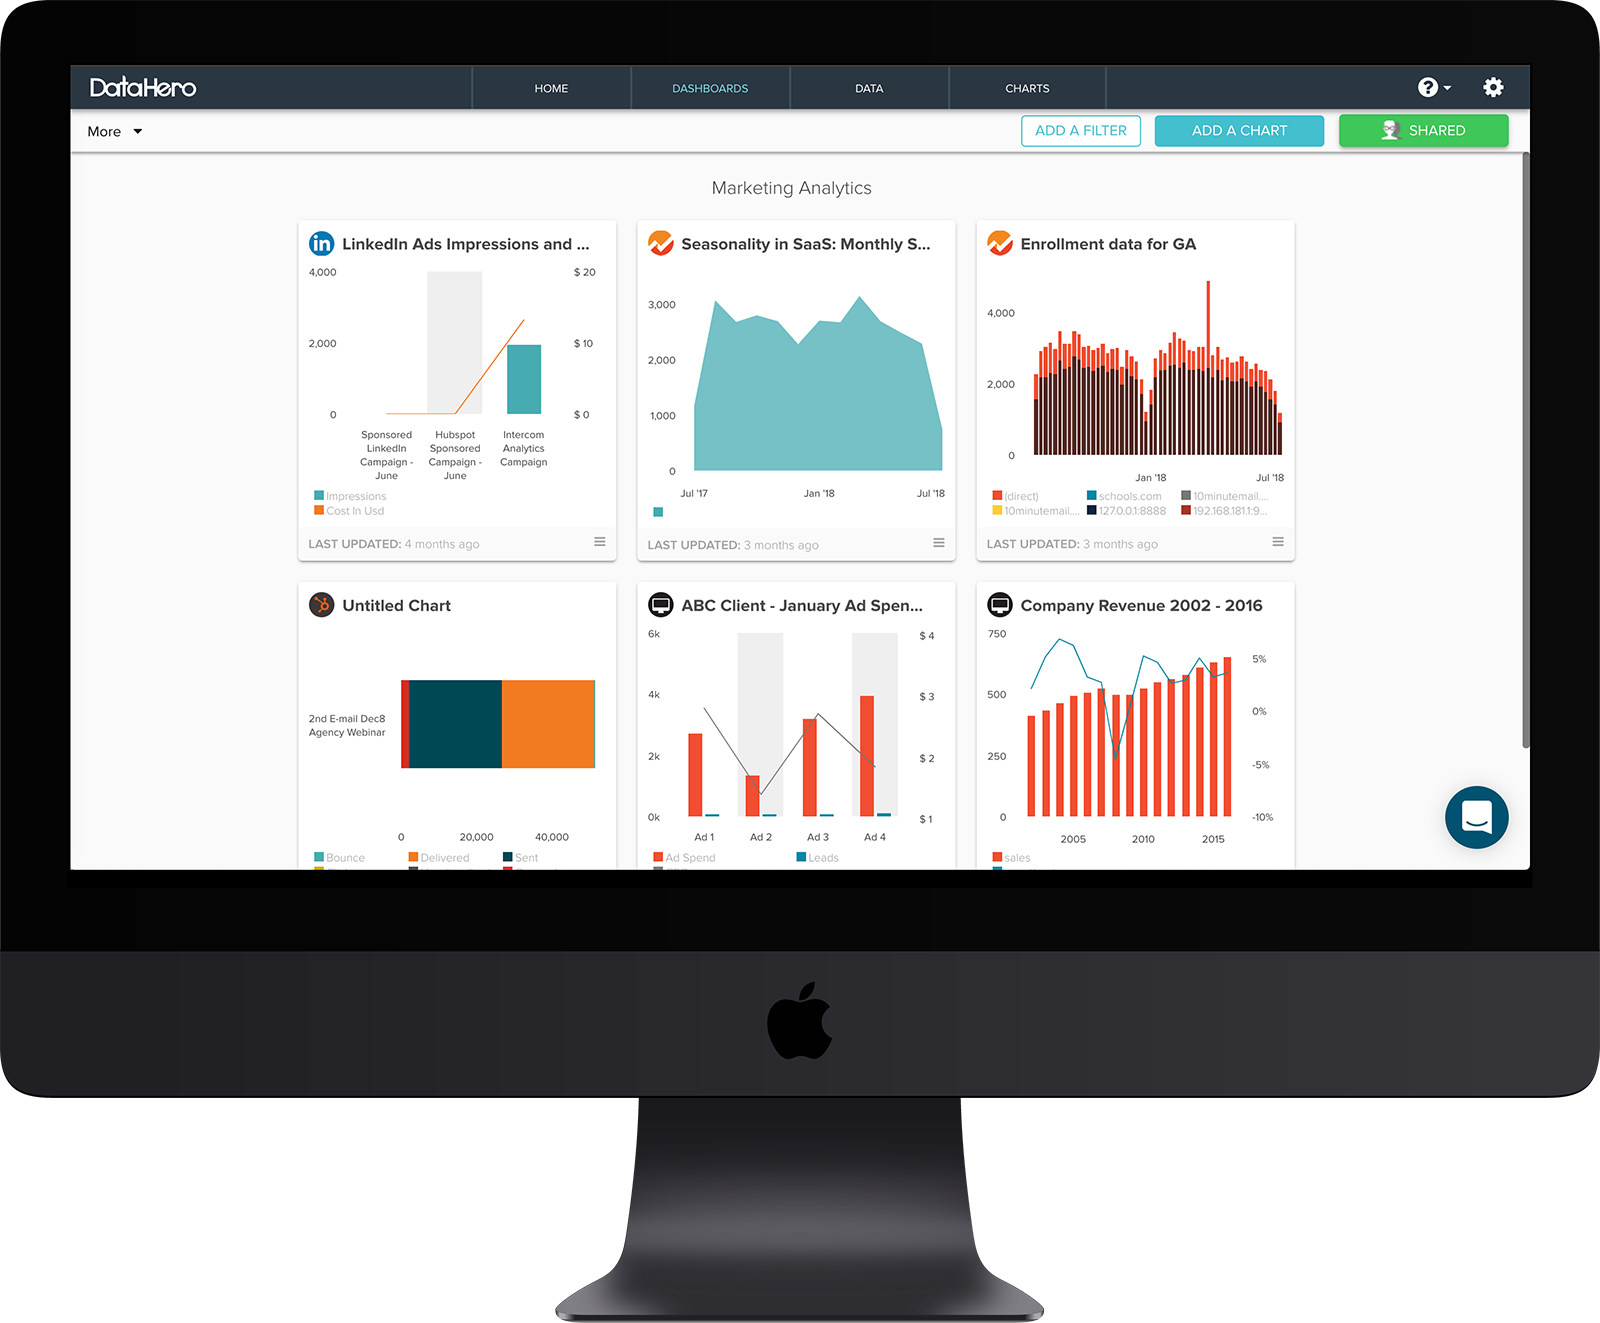 DataHero dashboard to motivate agency owners with revenue targets